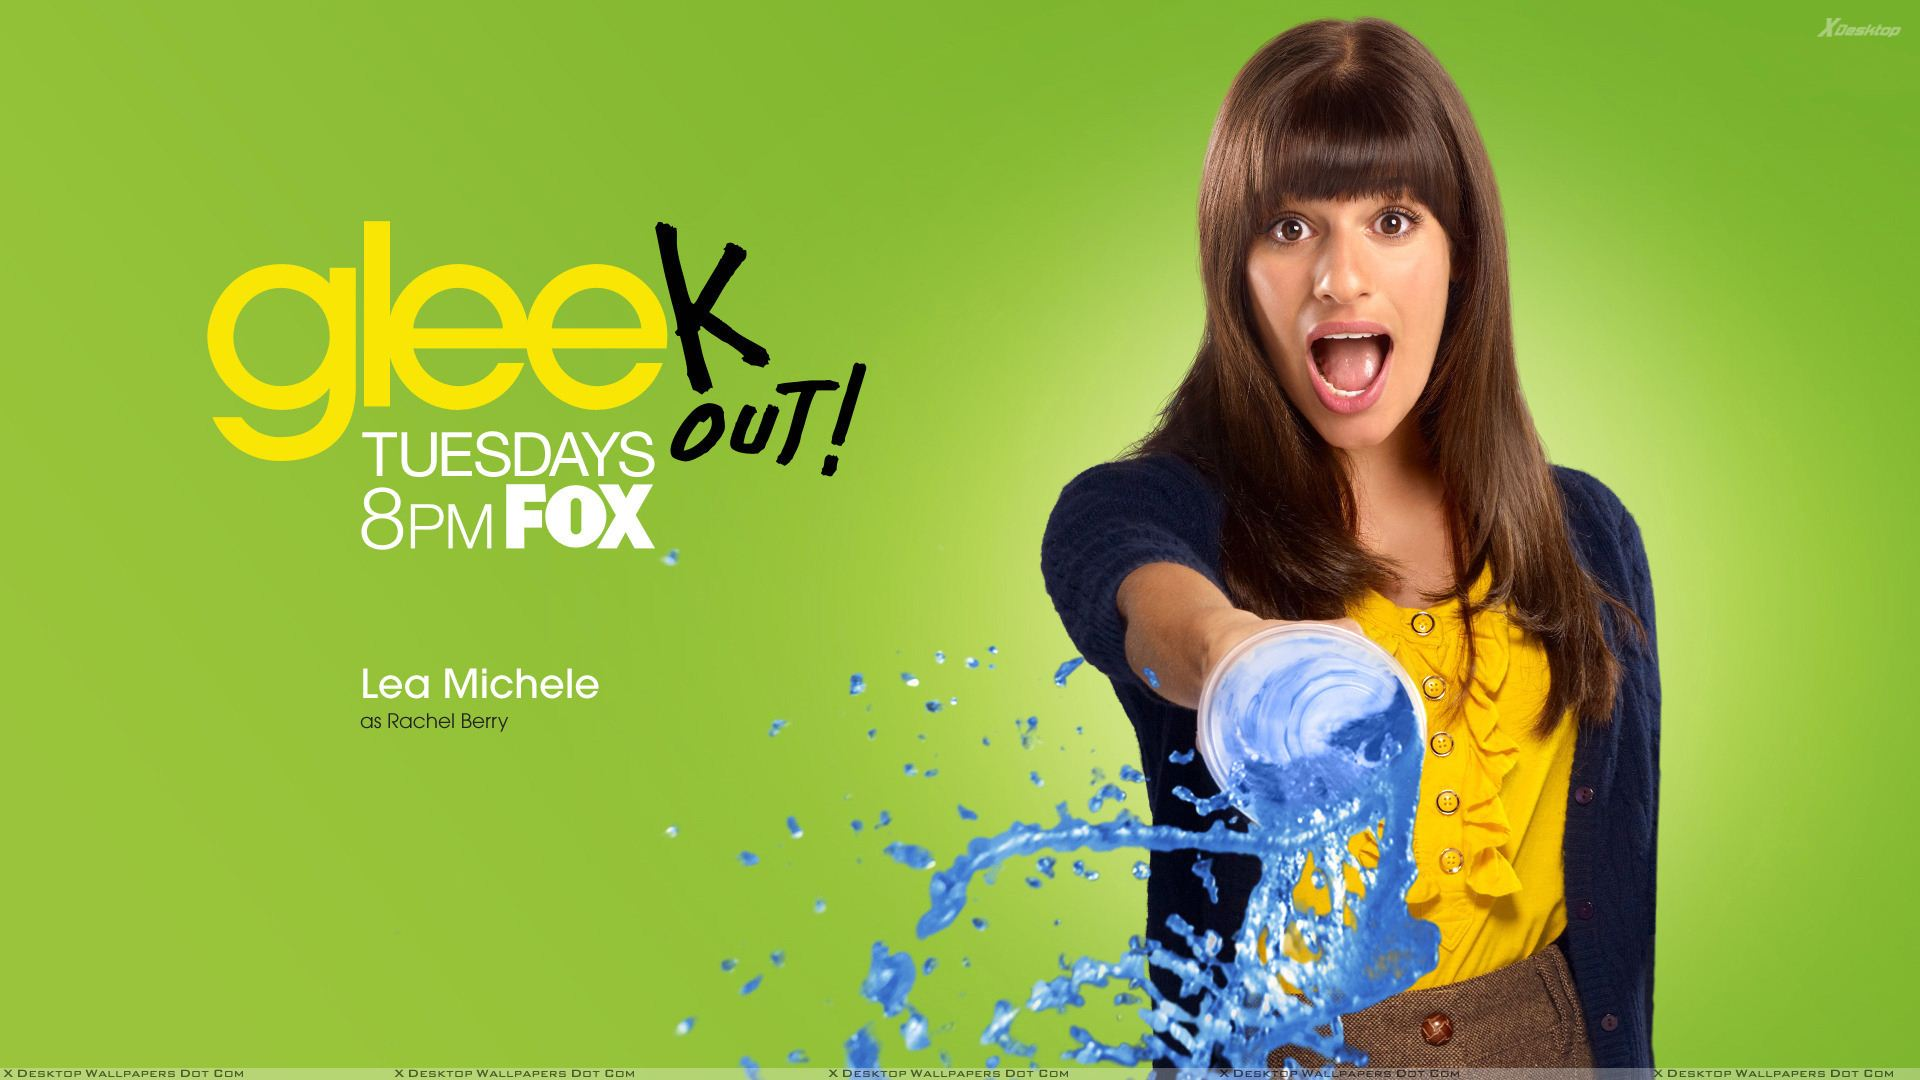 Glee Tv Series Wallpapers Photos Images In Hd